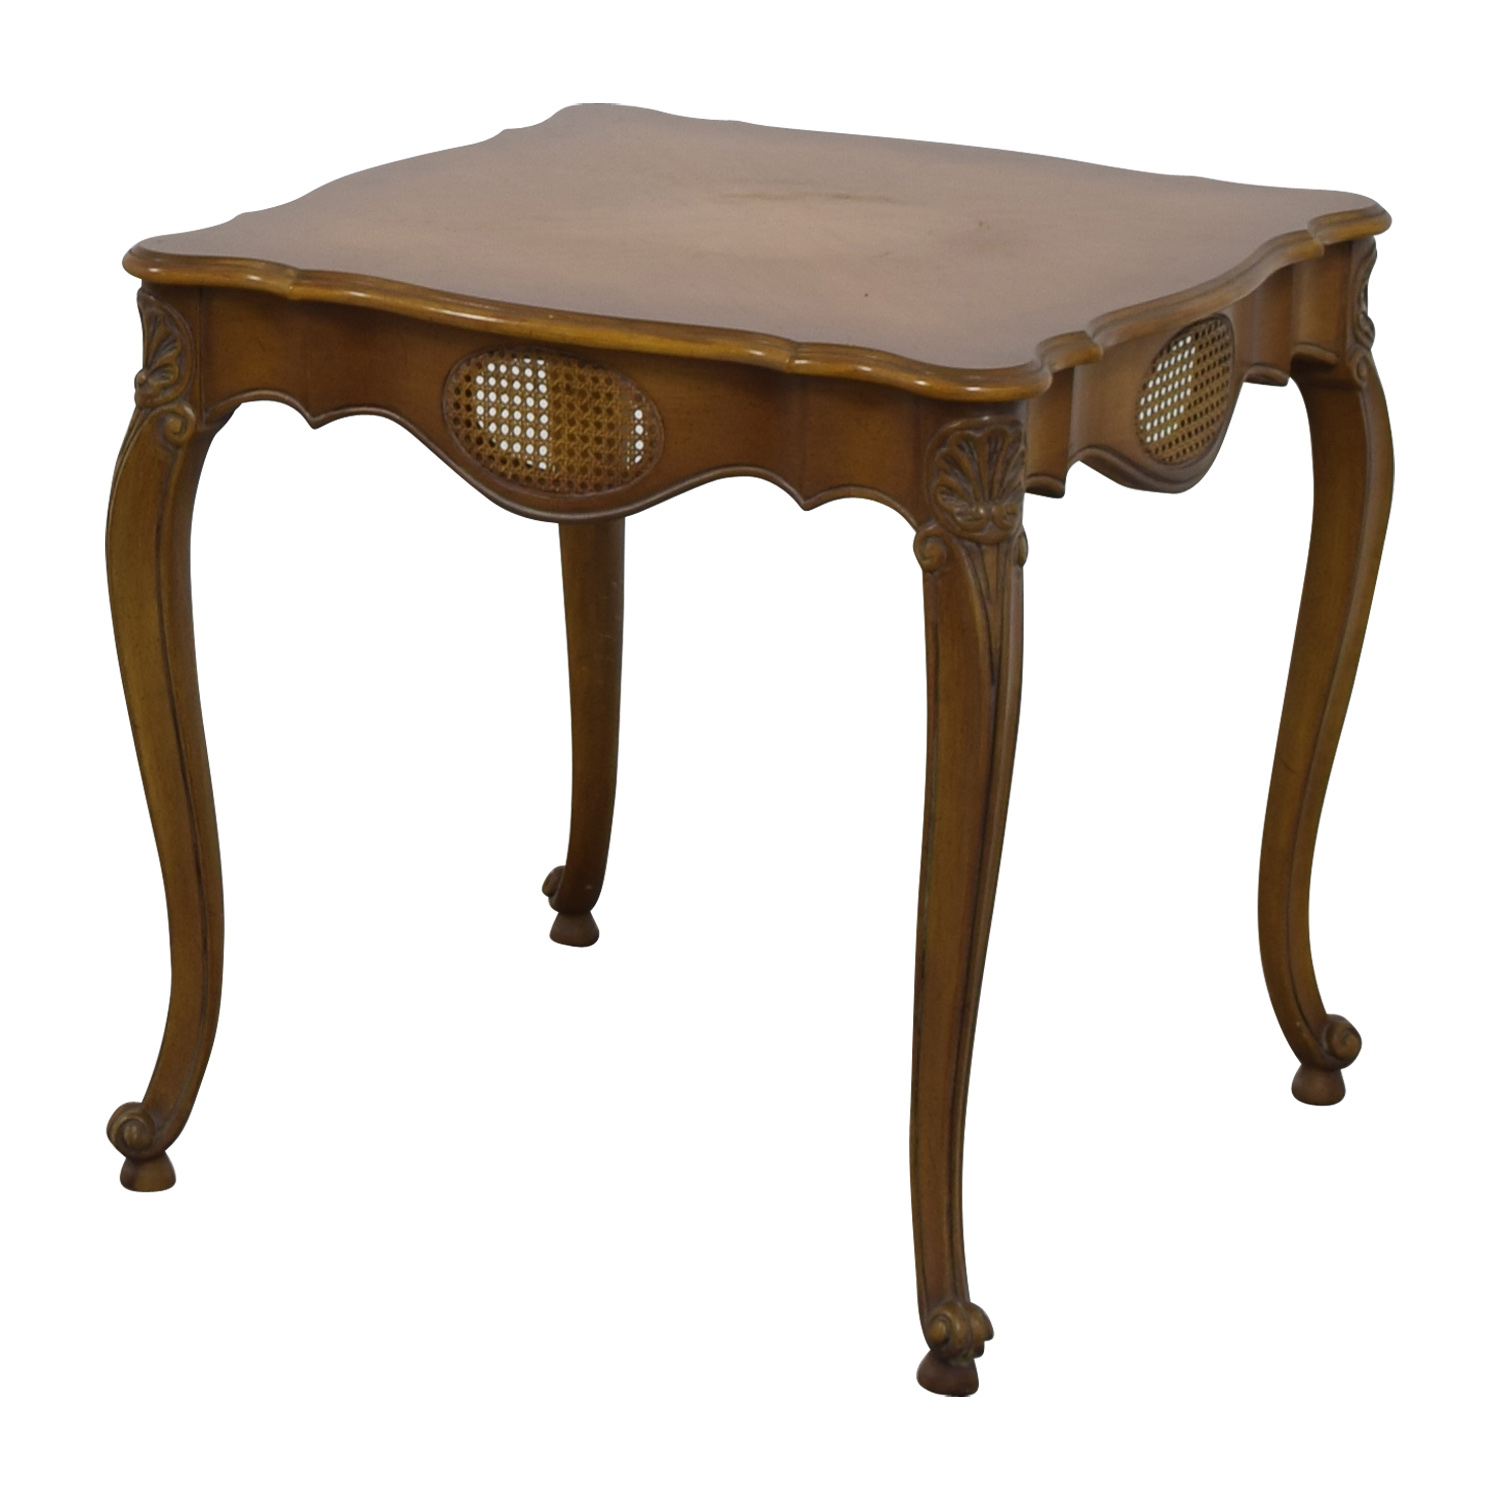 Vintage French Provincial End Table